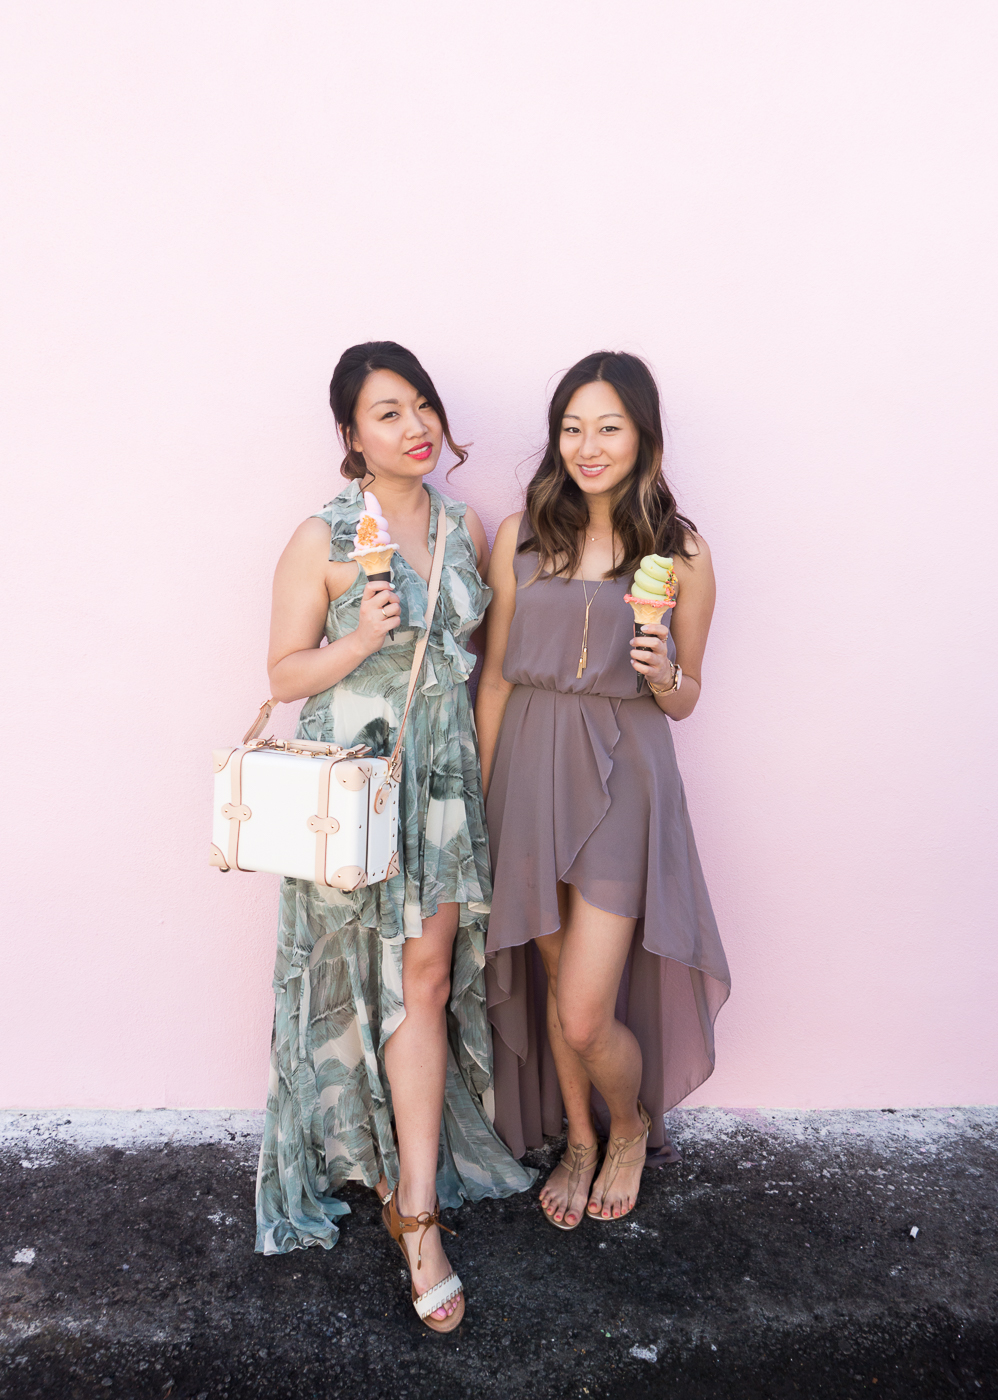 Lulu's Sage Green High-Low Dress & Steamline Luggage Sweetheart Vanity Case | The Chic Diary